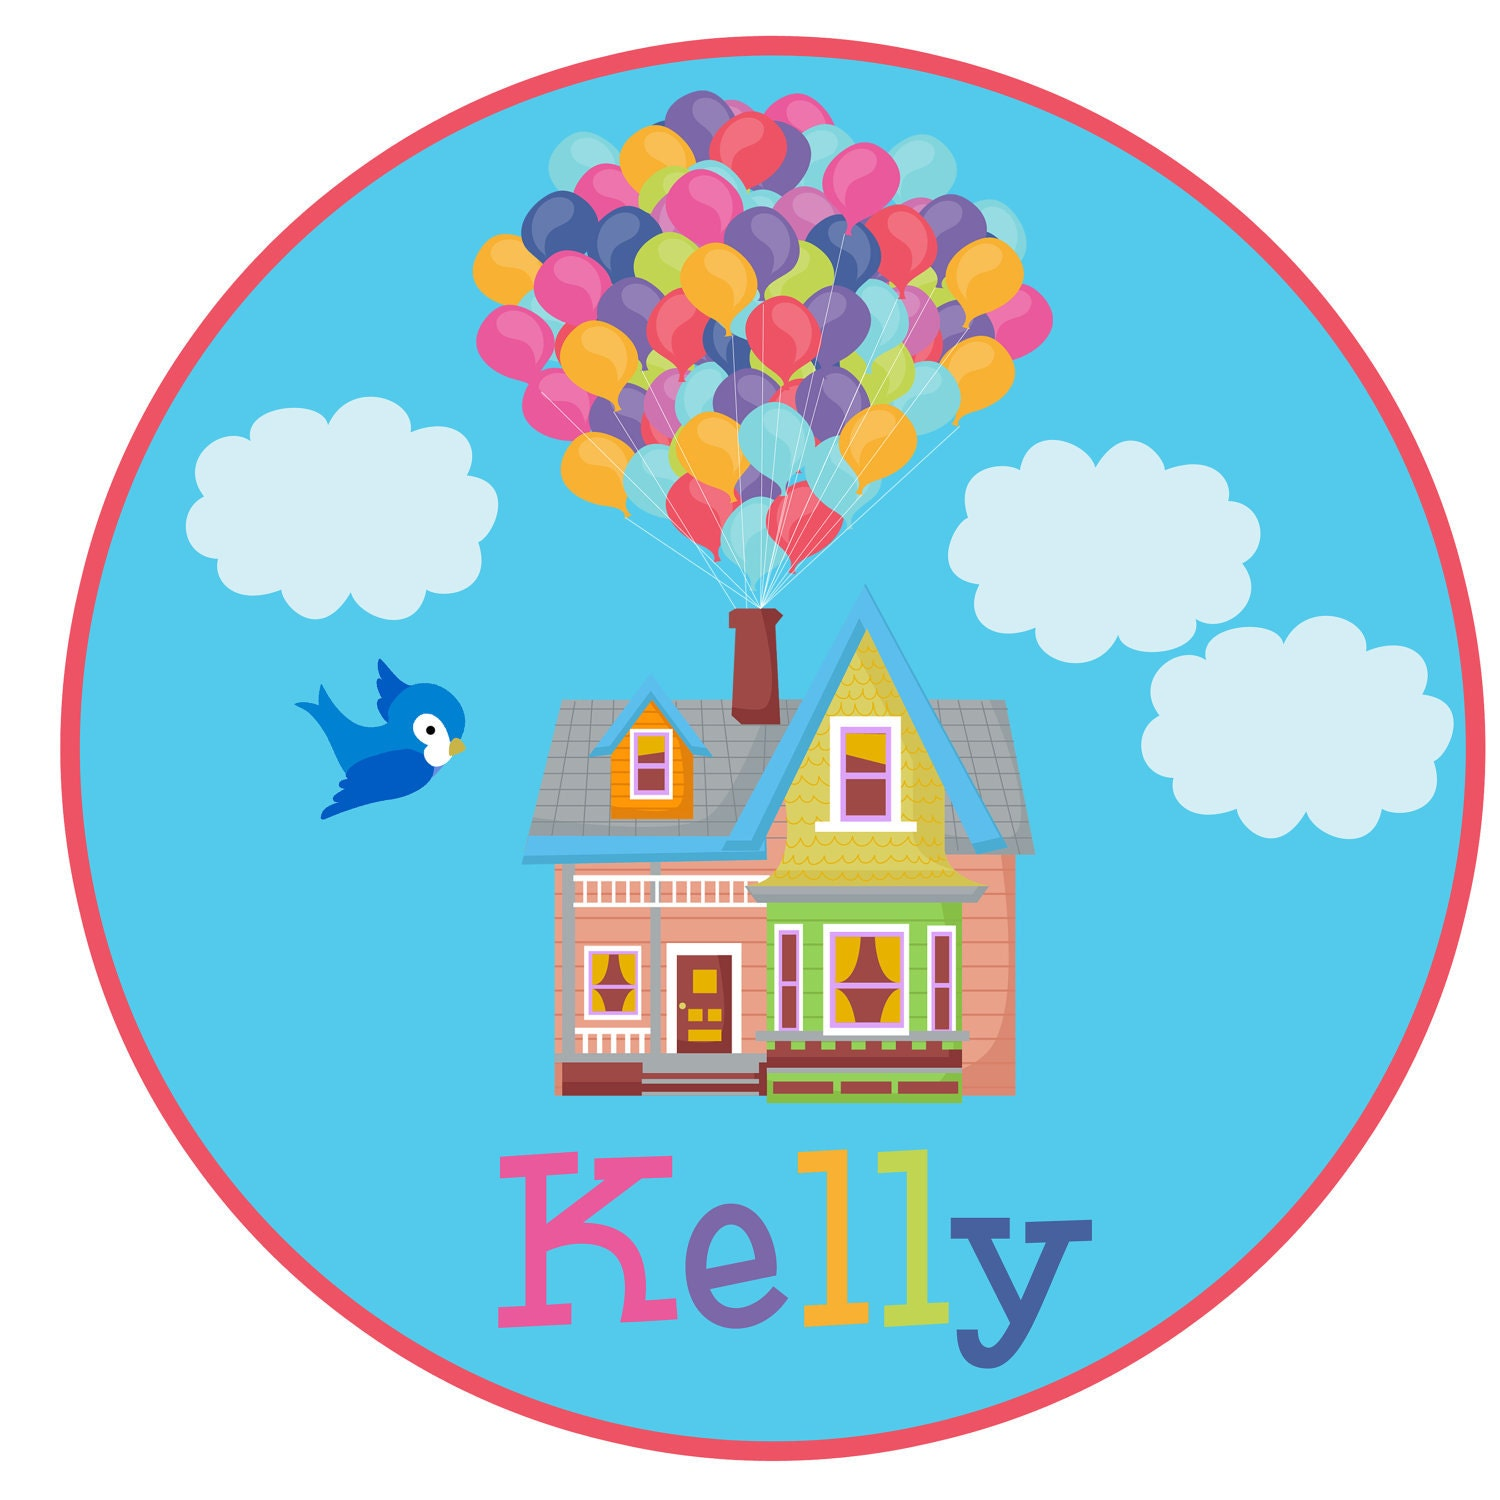 Up House Balloons Personalized Up House With Balloons Bodysuit Or Shirt